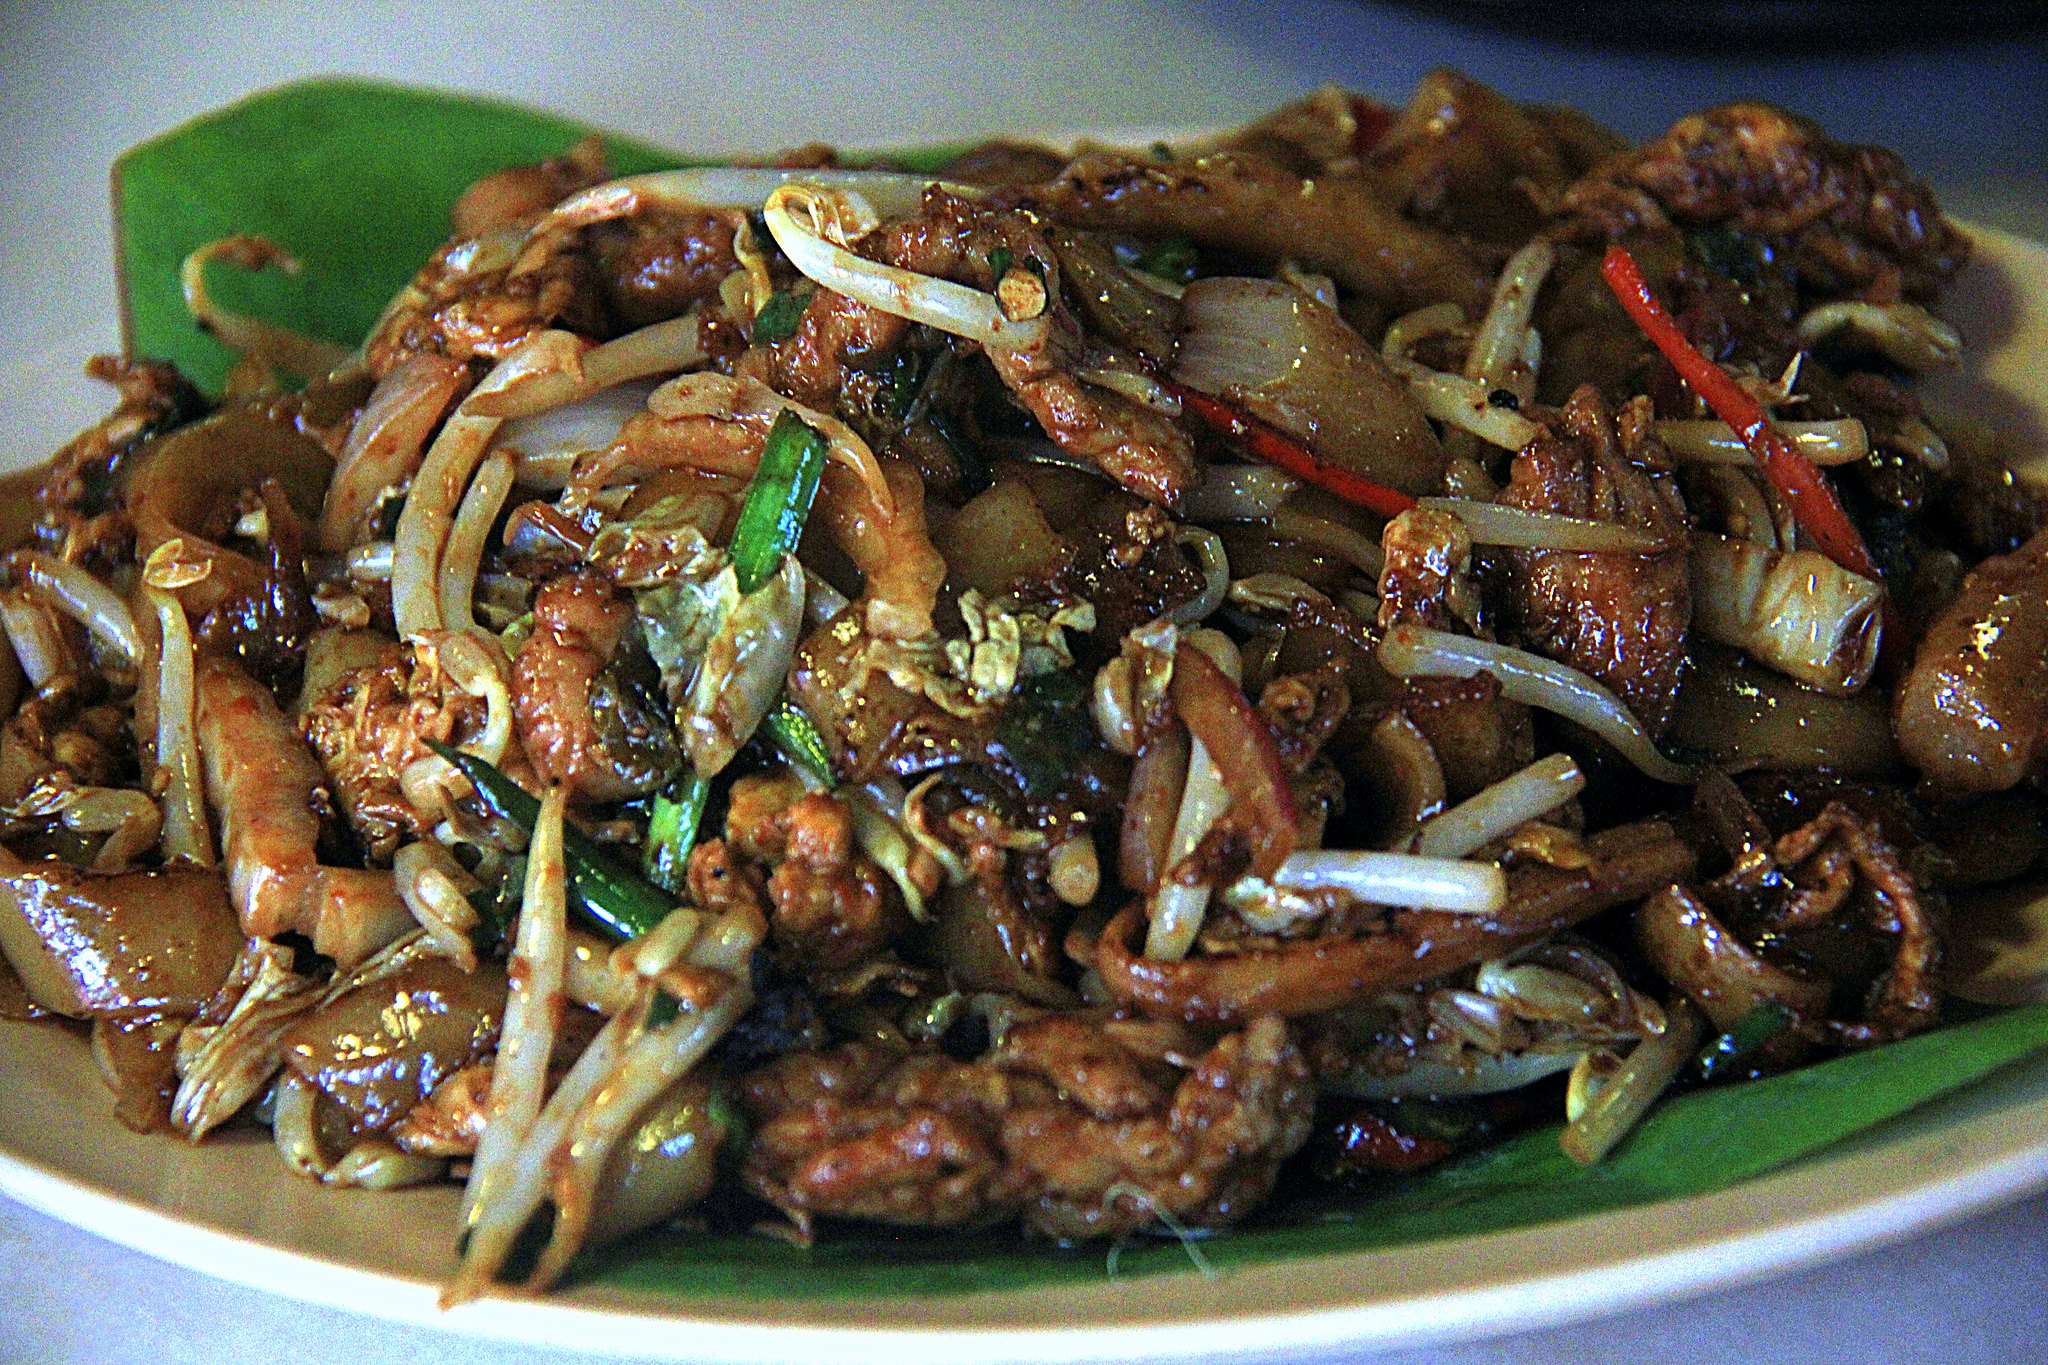 Food in Kuala Lumpur Chinatown is a blend of Chinese and Malay cooking